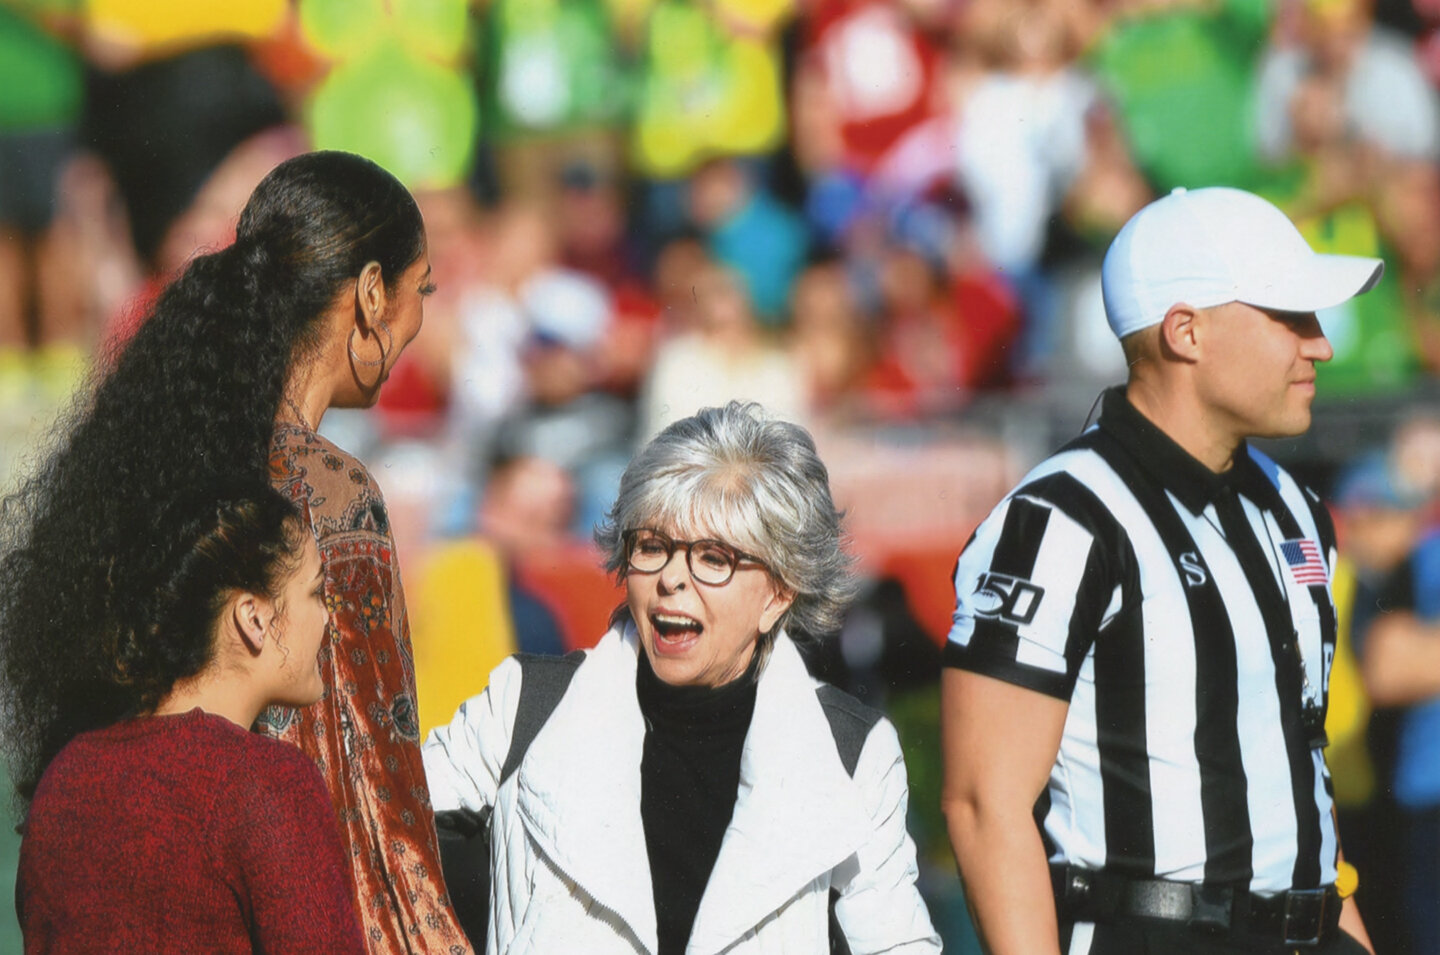 During the Pre-Game, Big-12 Referee Brandon Cruse (R) is joined at midfield by Grand Marshals (L to R) Laurie Hernandez, Gina Torres, and Rita Moreno who did the coin flip. (Earl Heath Photo)